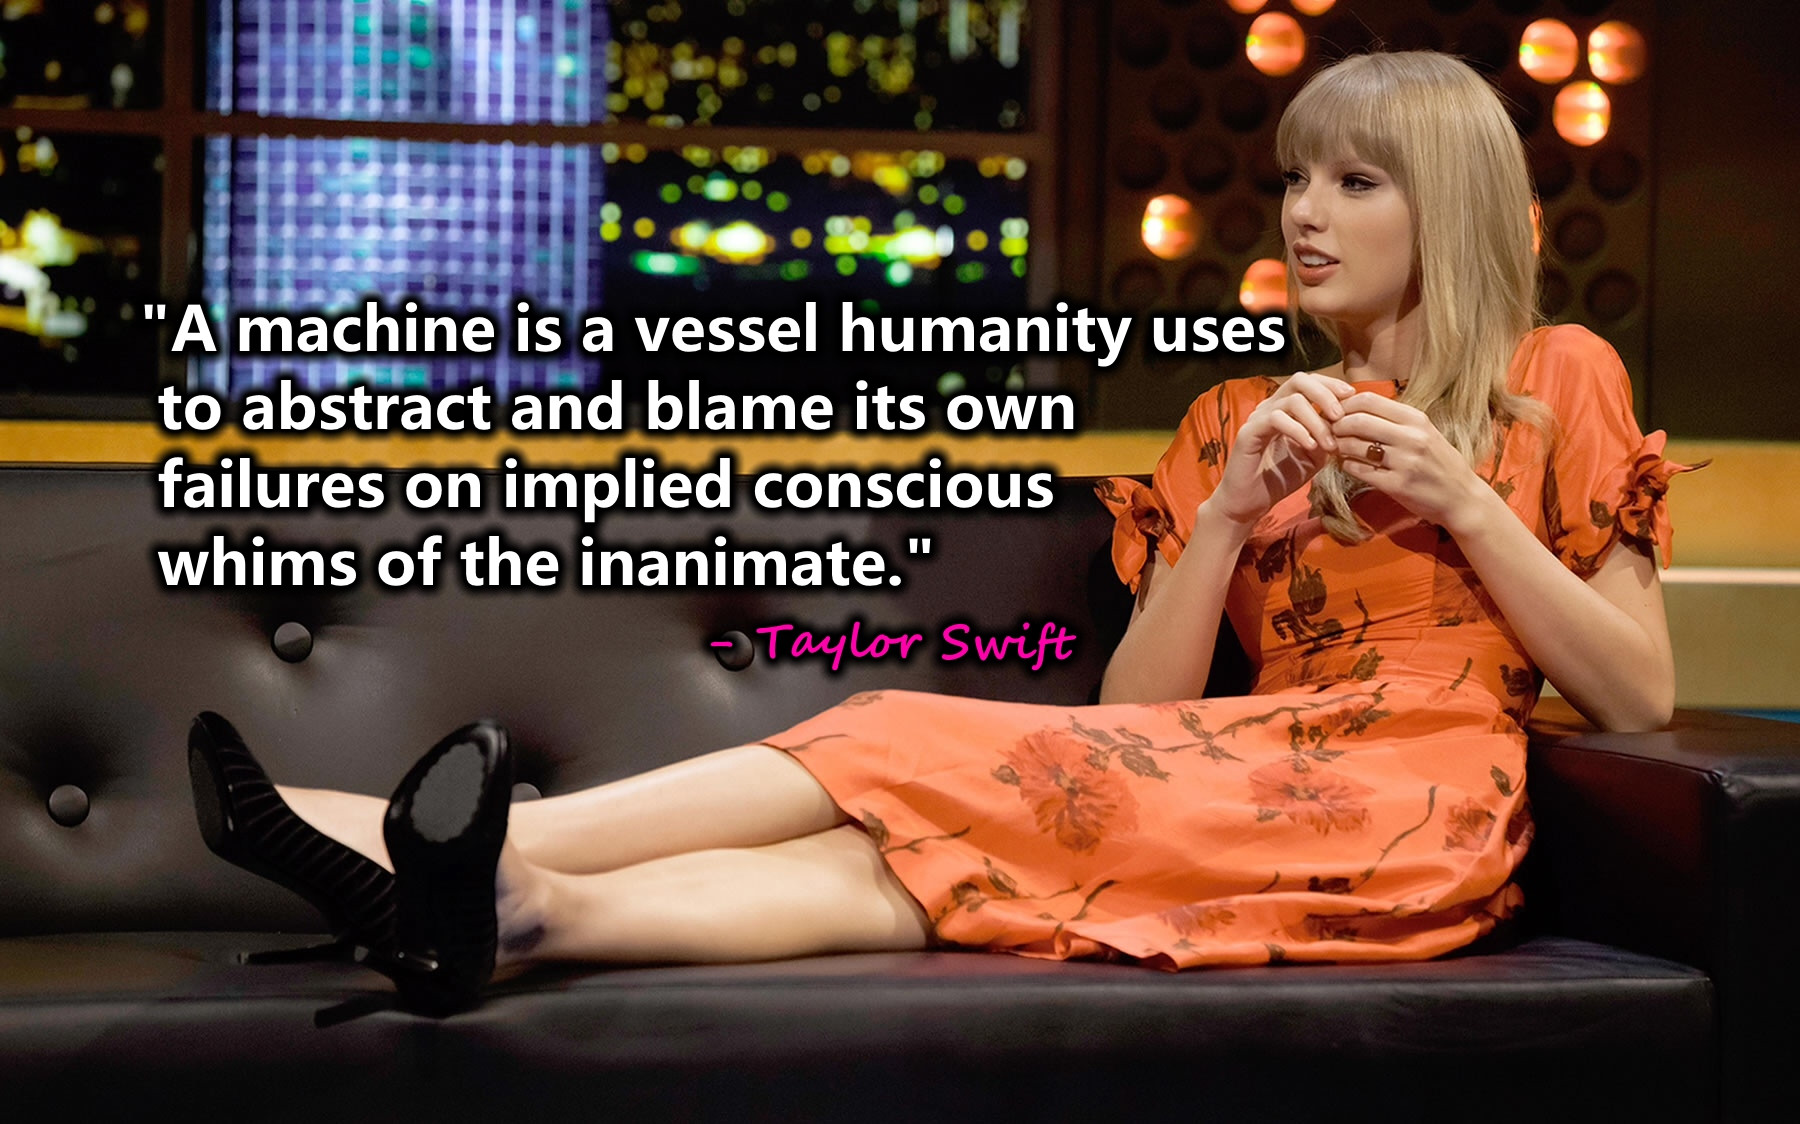 SwiftOnSecurity